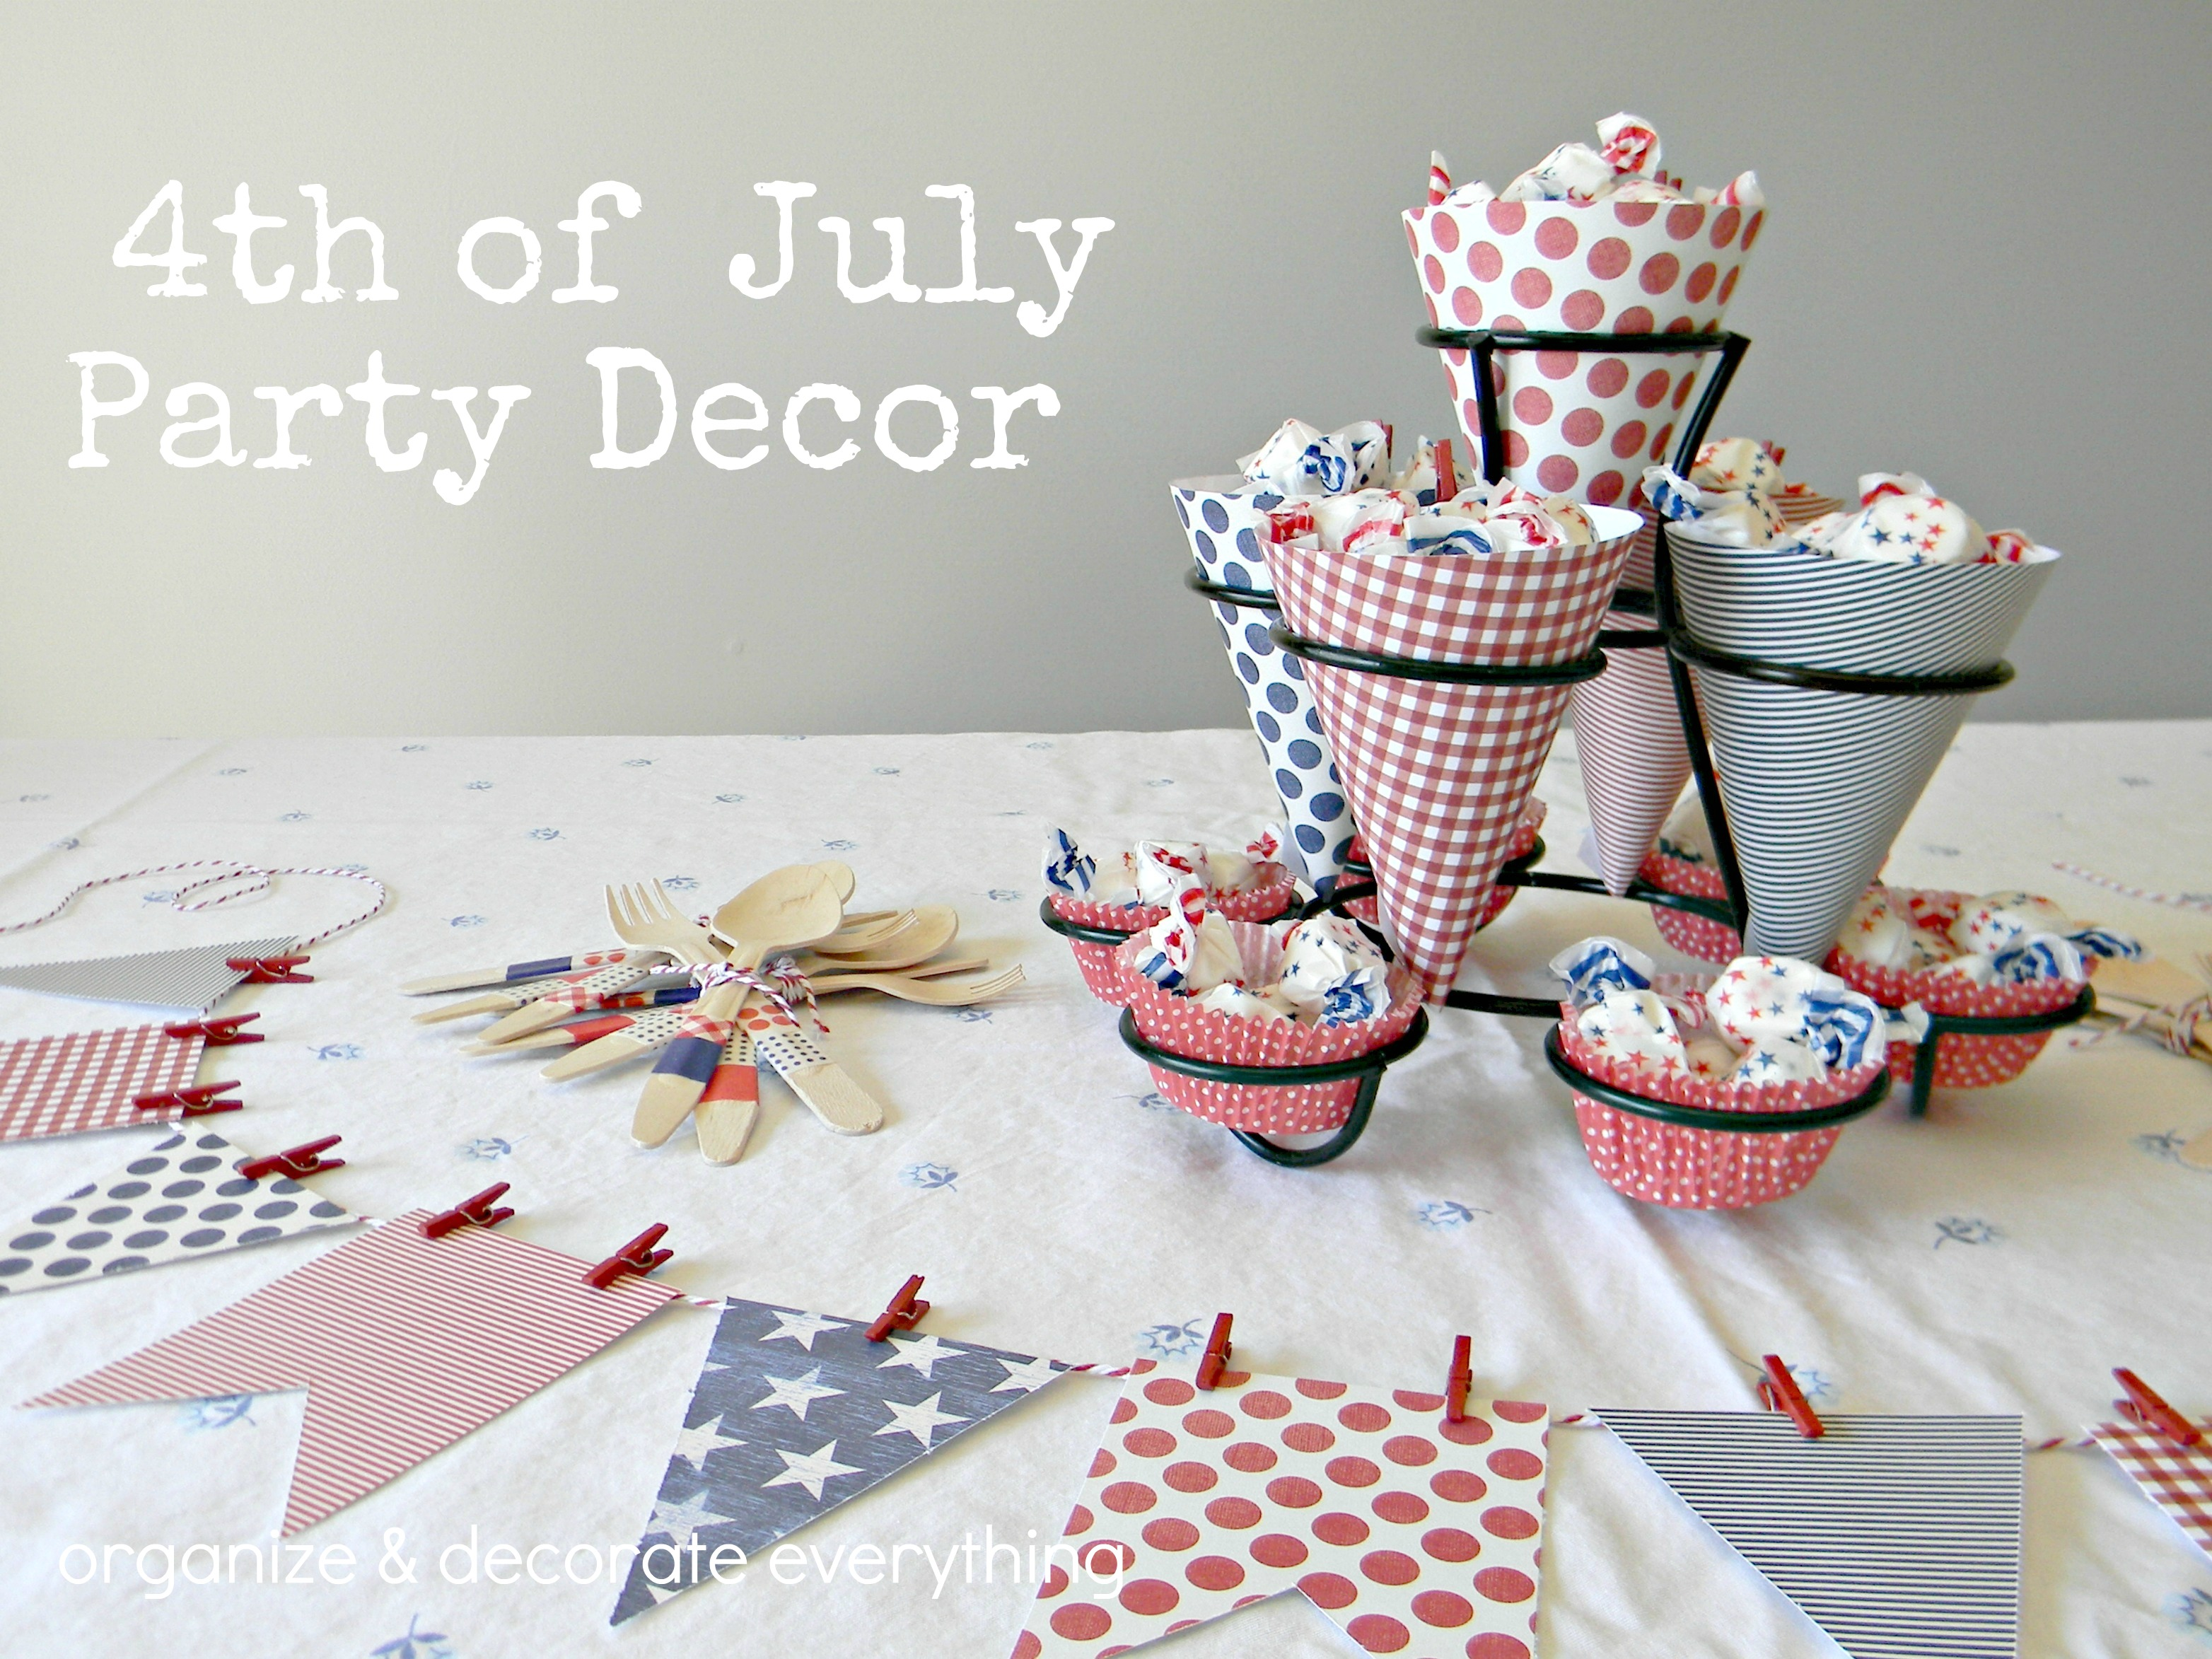 4th of july party decor organize and decorate everything for 4th of july party decoration